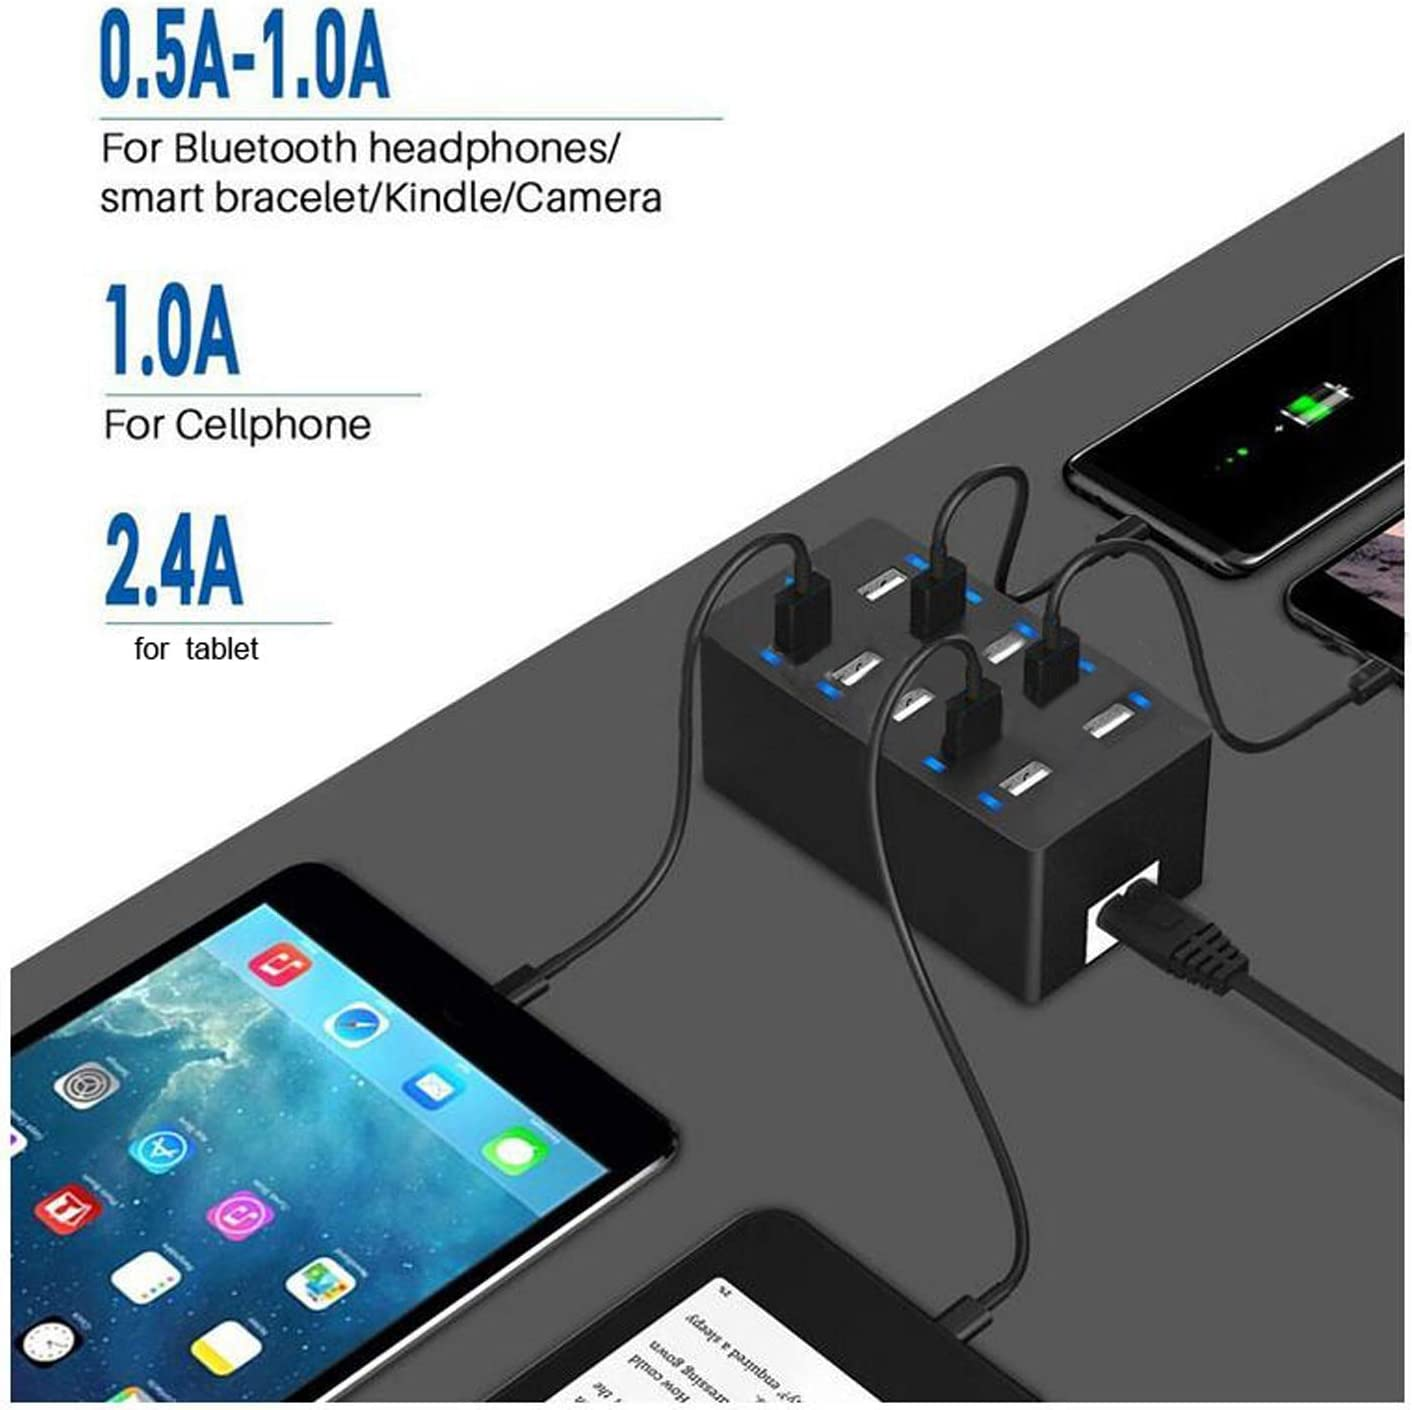 ShengLong USB Charging Station Compatible with iPhone iPad Tablet USB Charger Multi Port with Smart Detect 60W 10 Port USB Charger Hub Galaxy and Other USB Charging Devices